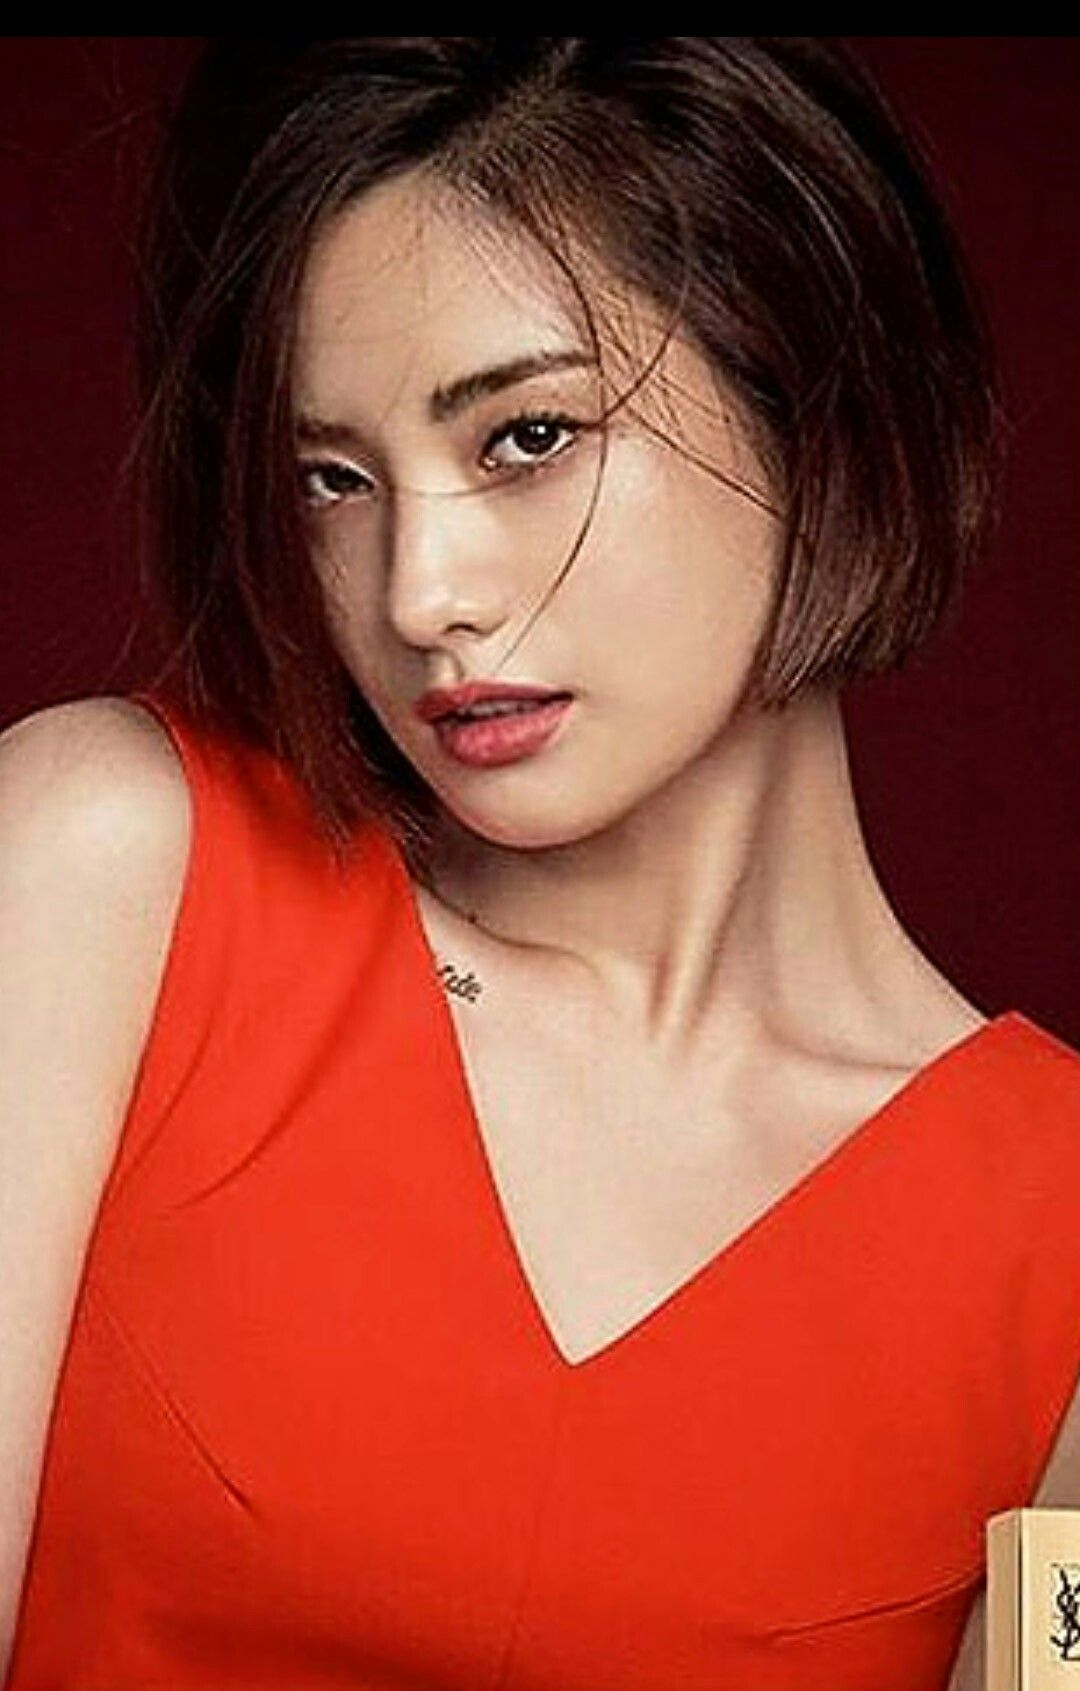 Pin On Nana Most Beautiful Face In The World 2014 2015 Supermodel Actress Kpop Superstar